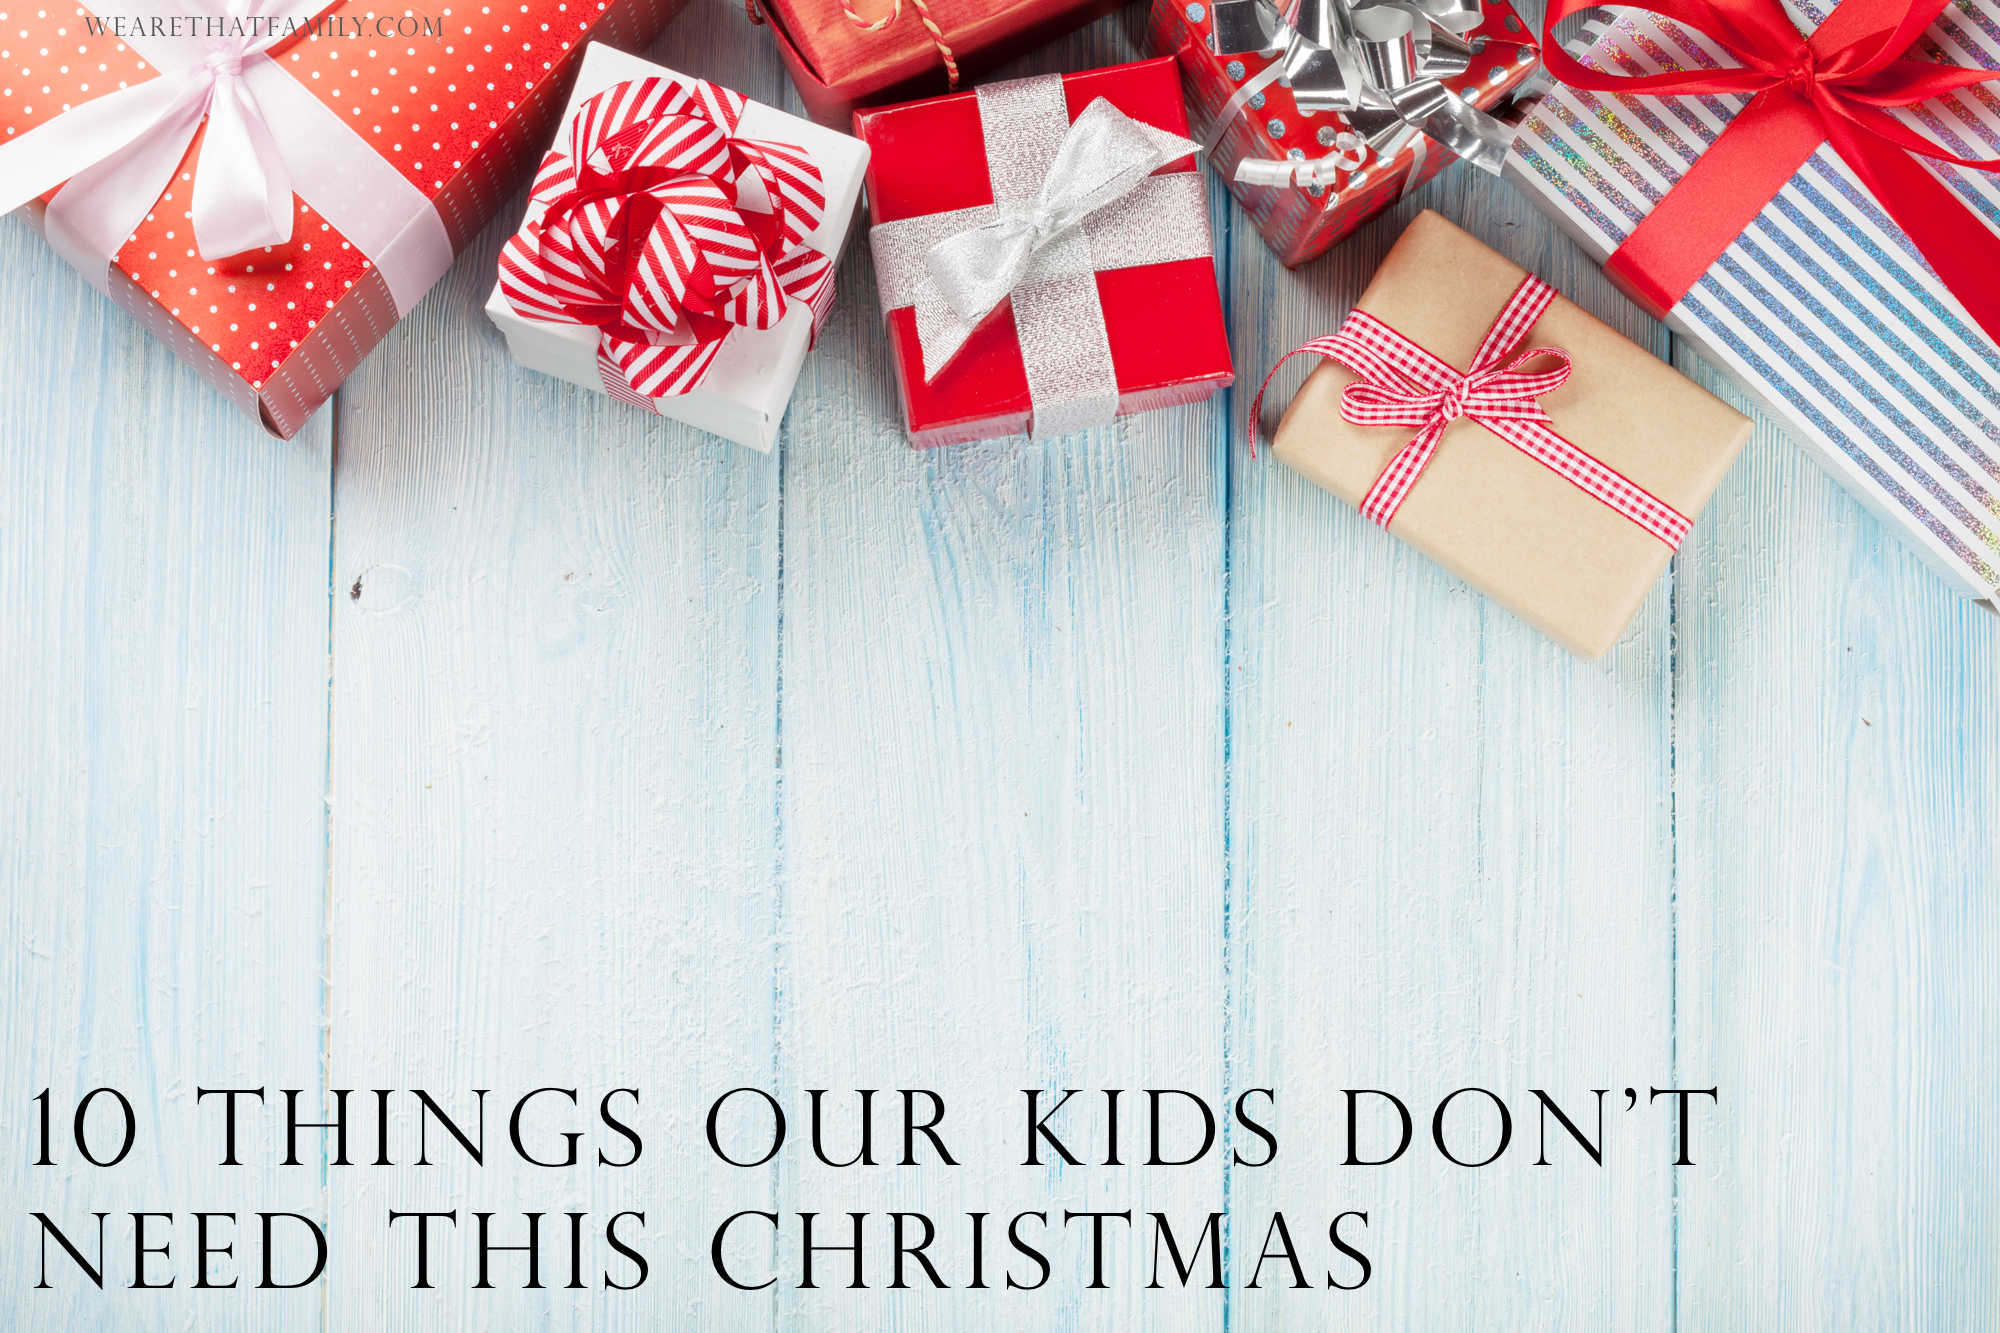 10 Things Our Kids Don't Need This Christmas